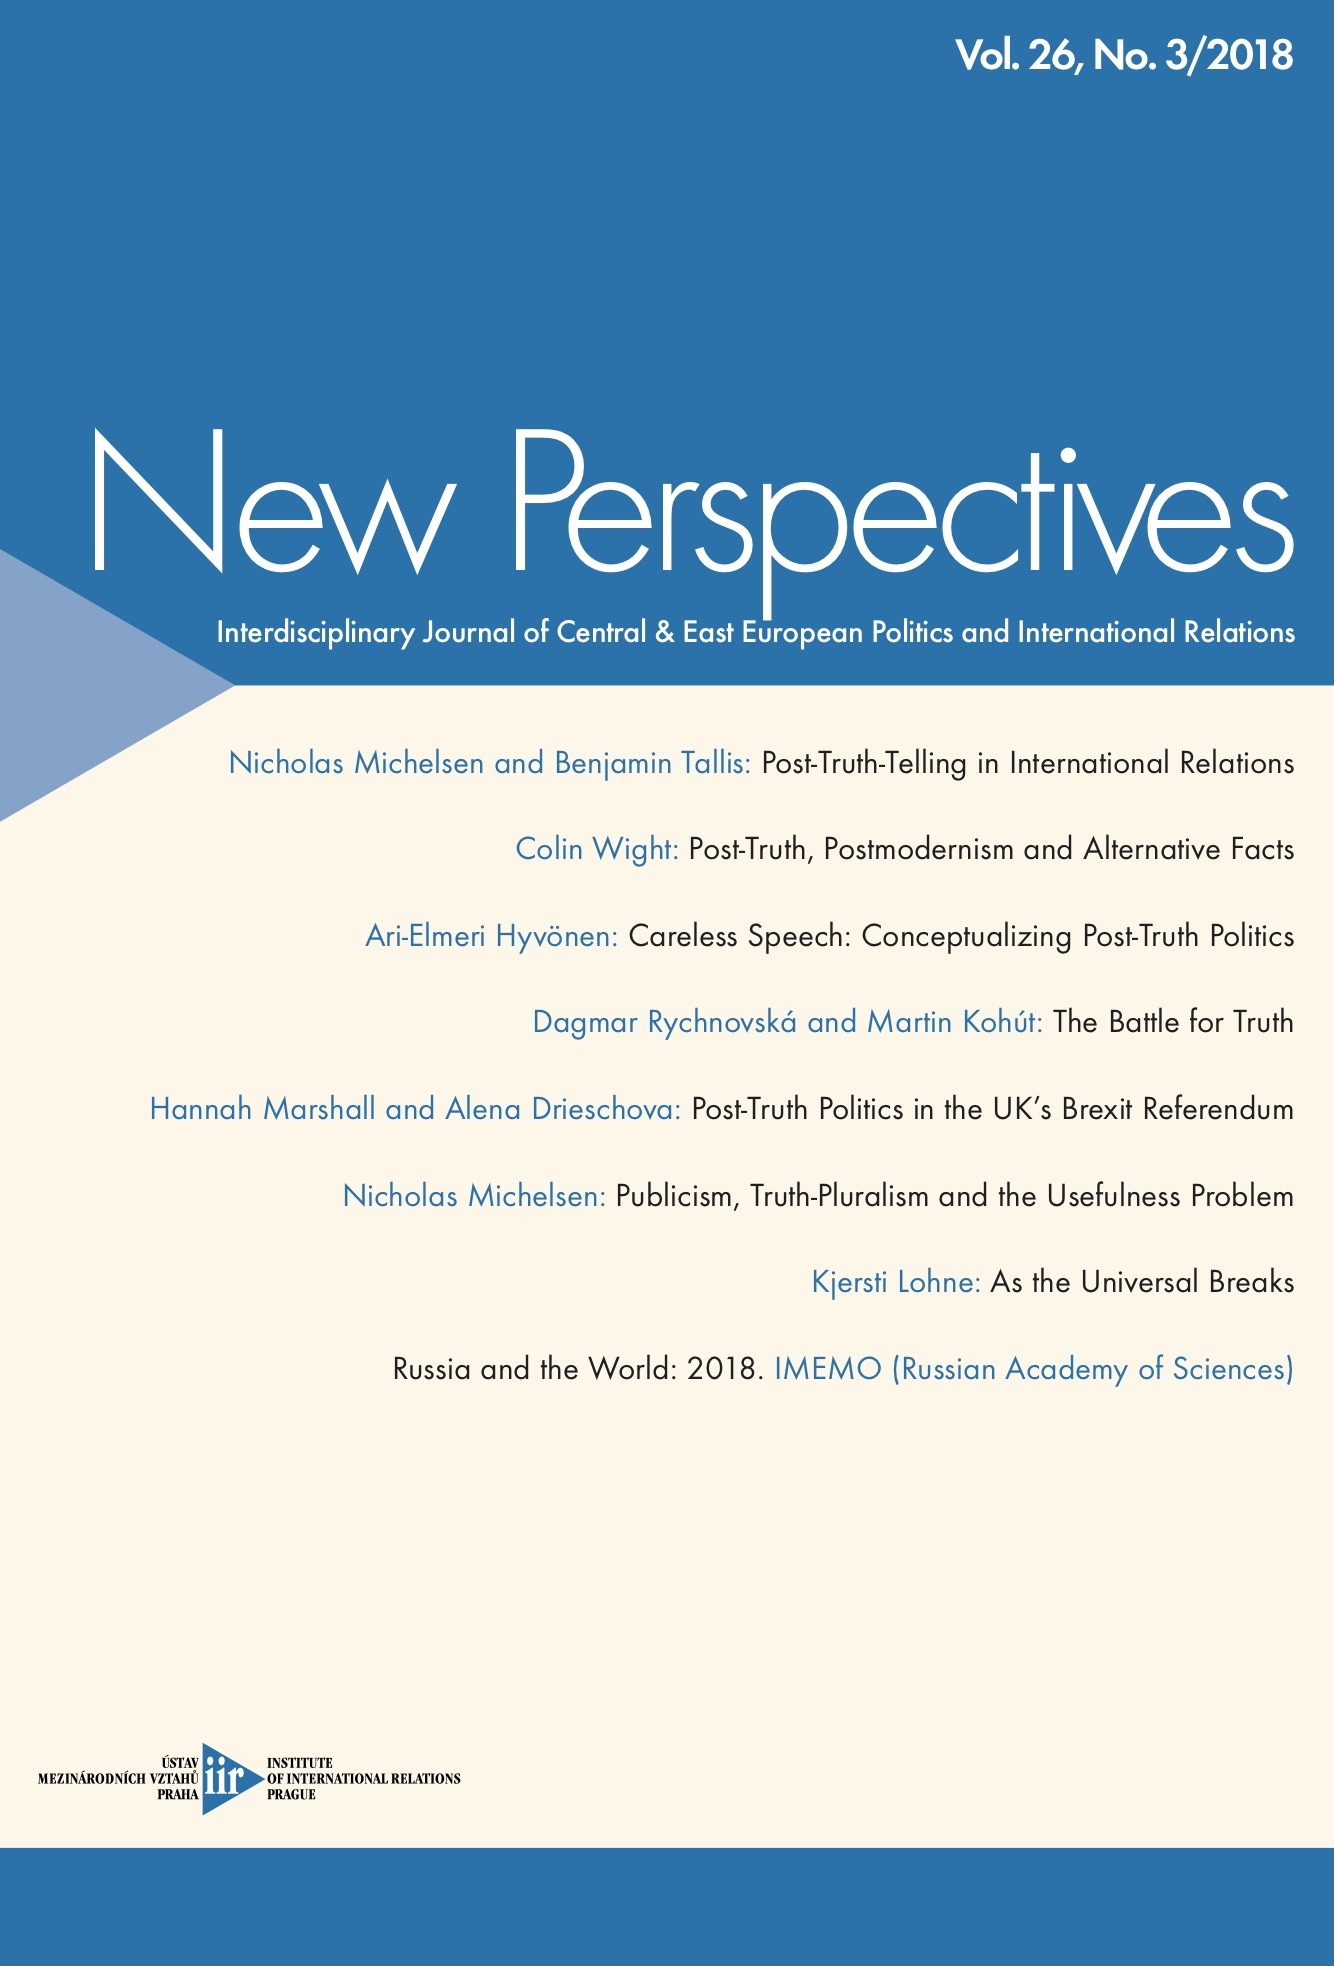 New Perspectives Issue 03/2018